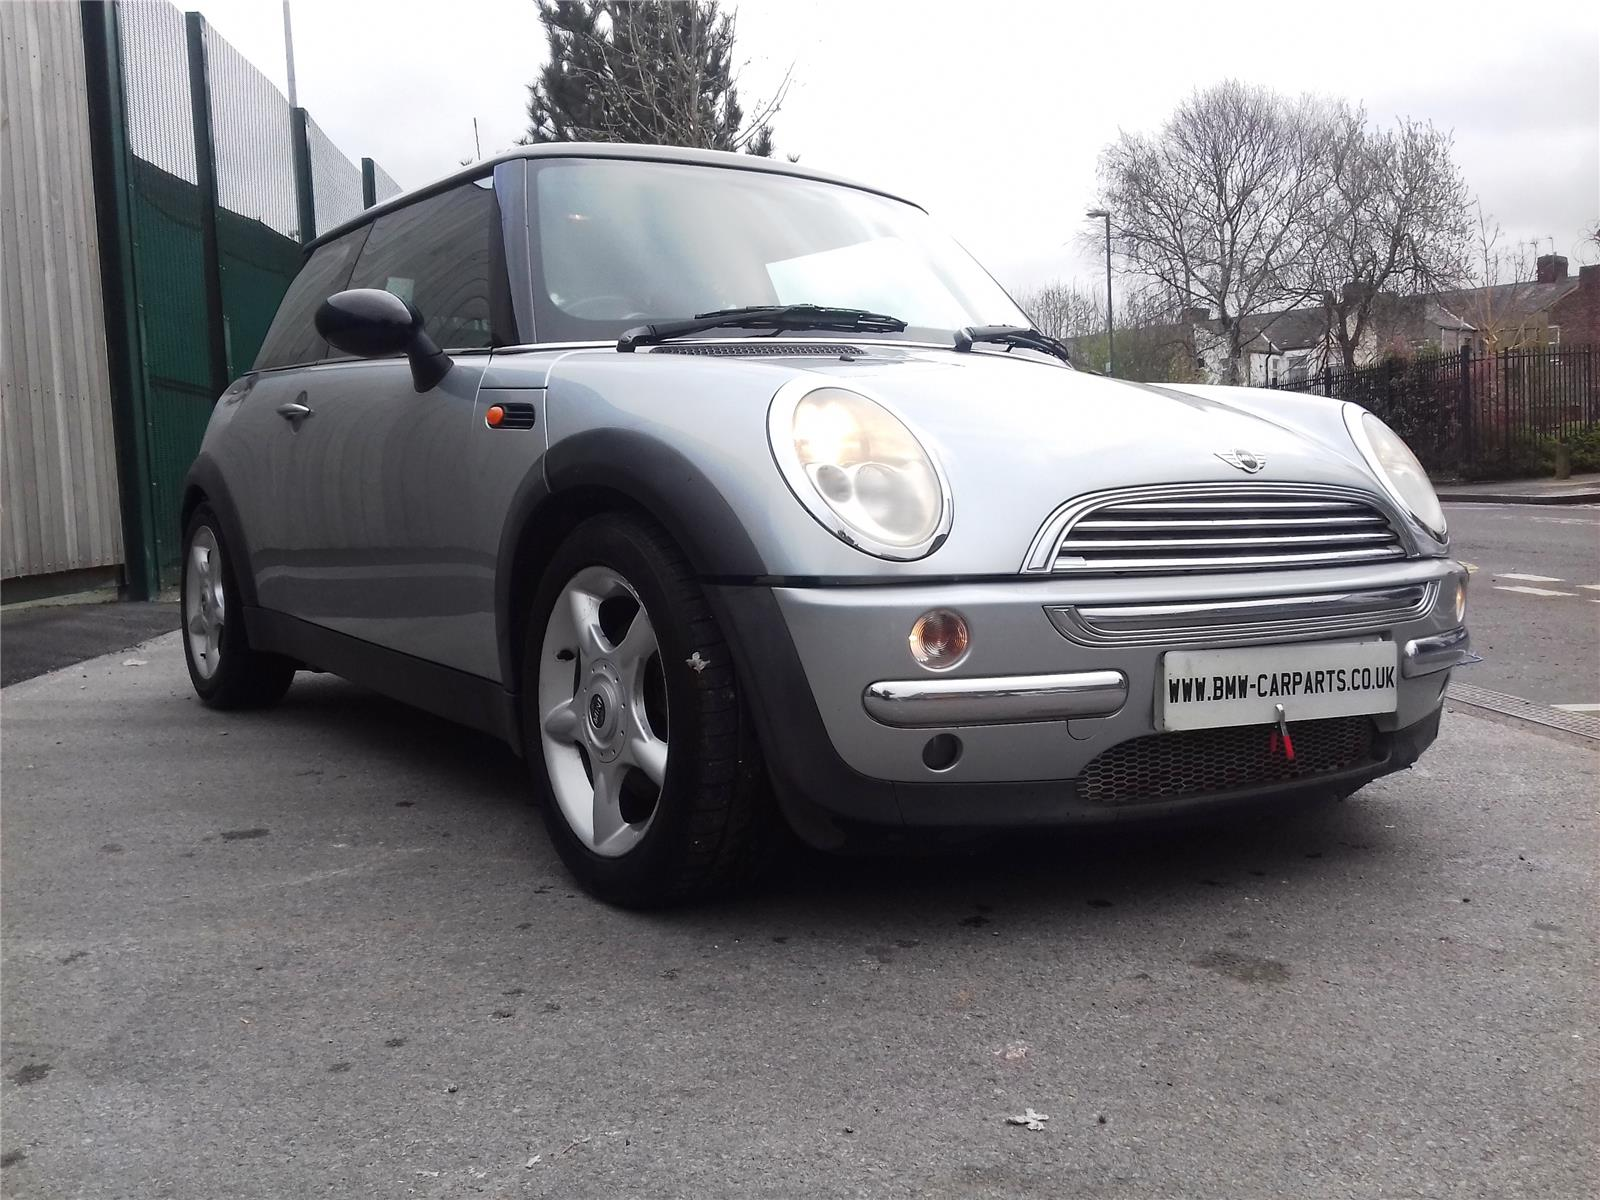 2001 mini r50 cooper 3 door hatchback petrol manual breaking for used and spare parts from. Black Bedroom Furniture Sets. Home Design Ideas